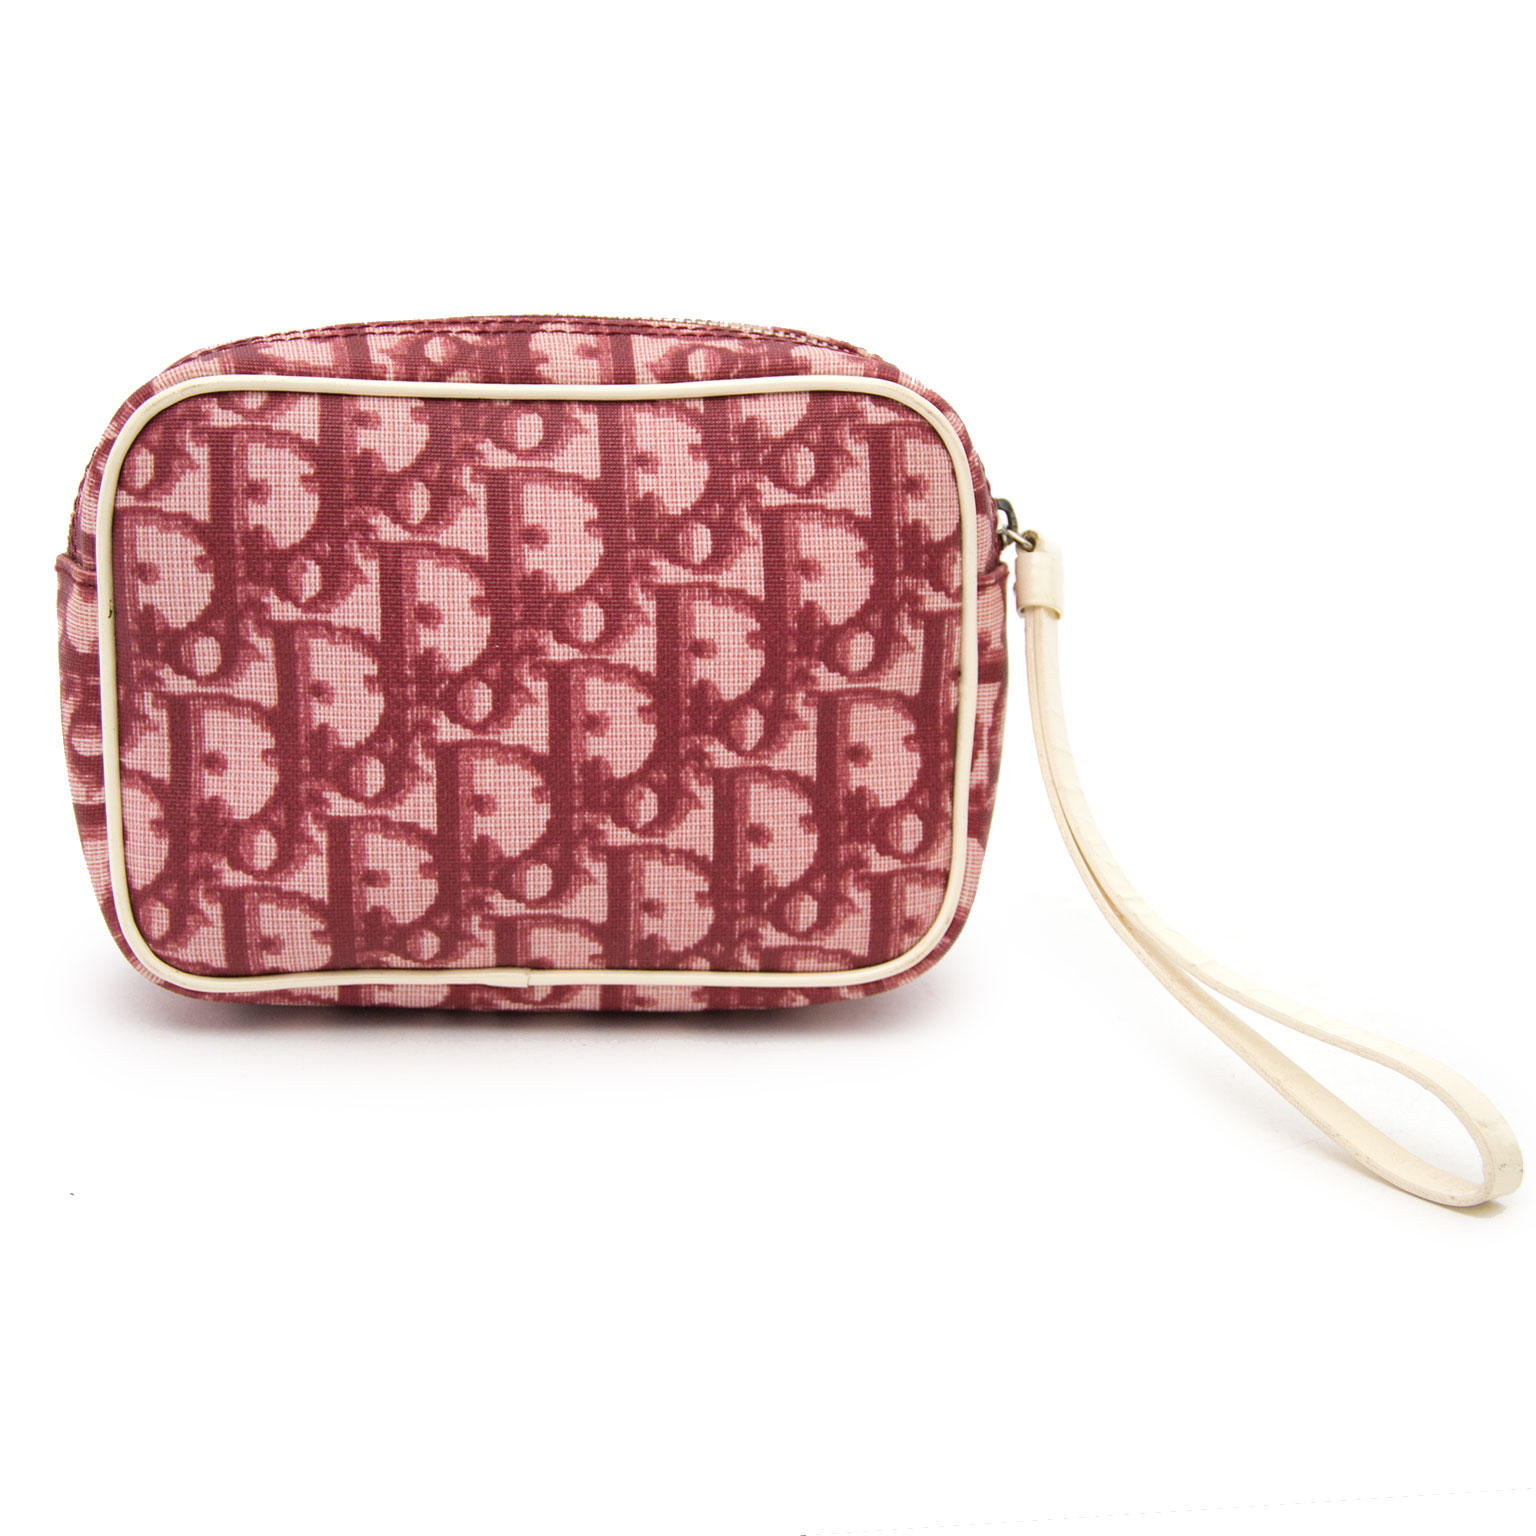 Dior monogram pochette red now online at labellov.com for the best price